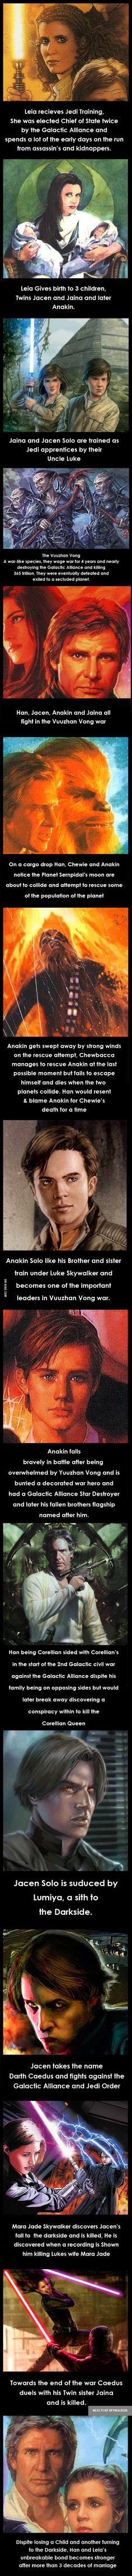 Star Wars History Solo Family (Pre-Disney) - 9GAG